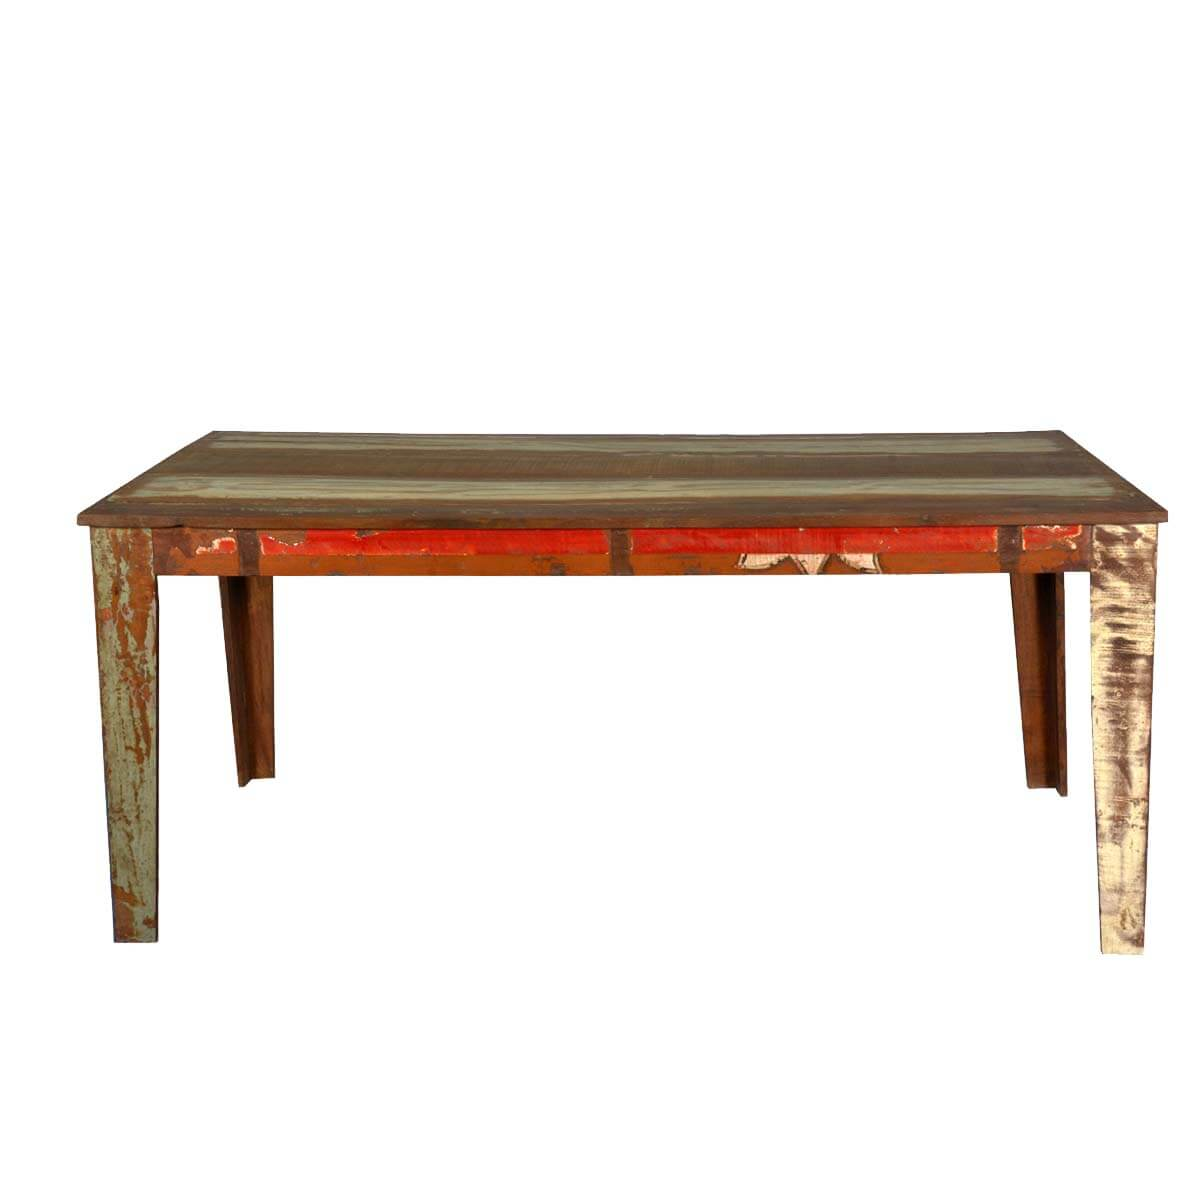 Appalachian rustic reclaimed wood 71 kitchen dining table - Rustic wooden kitchen table ...